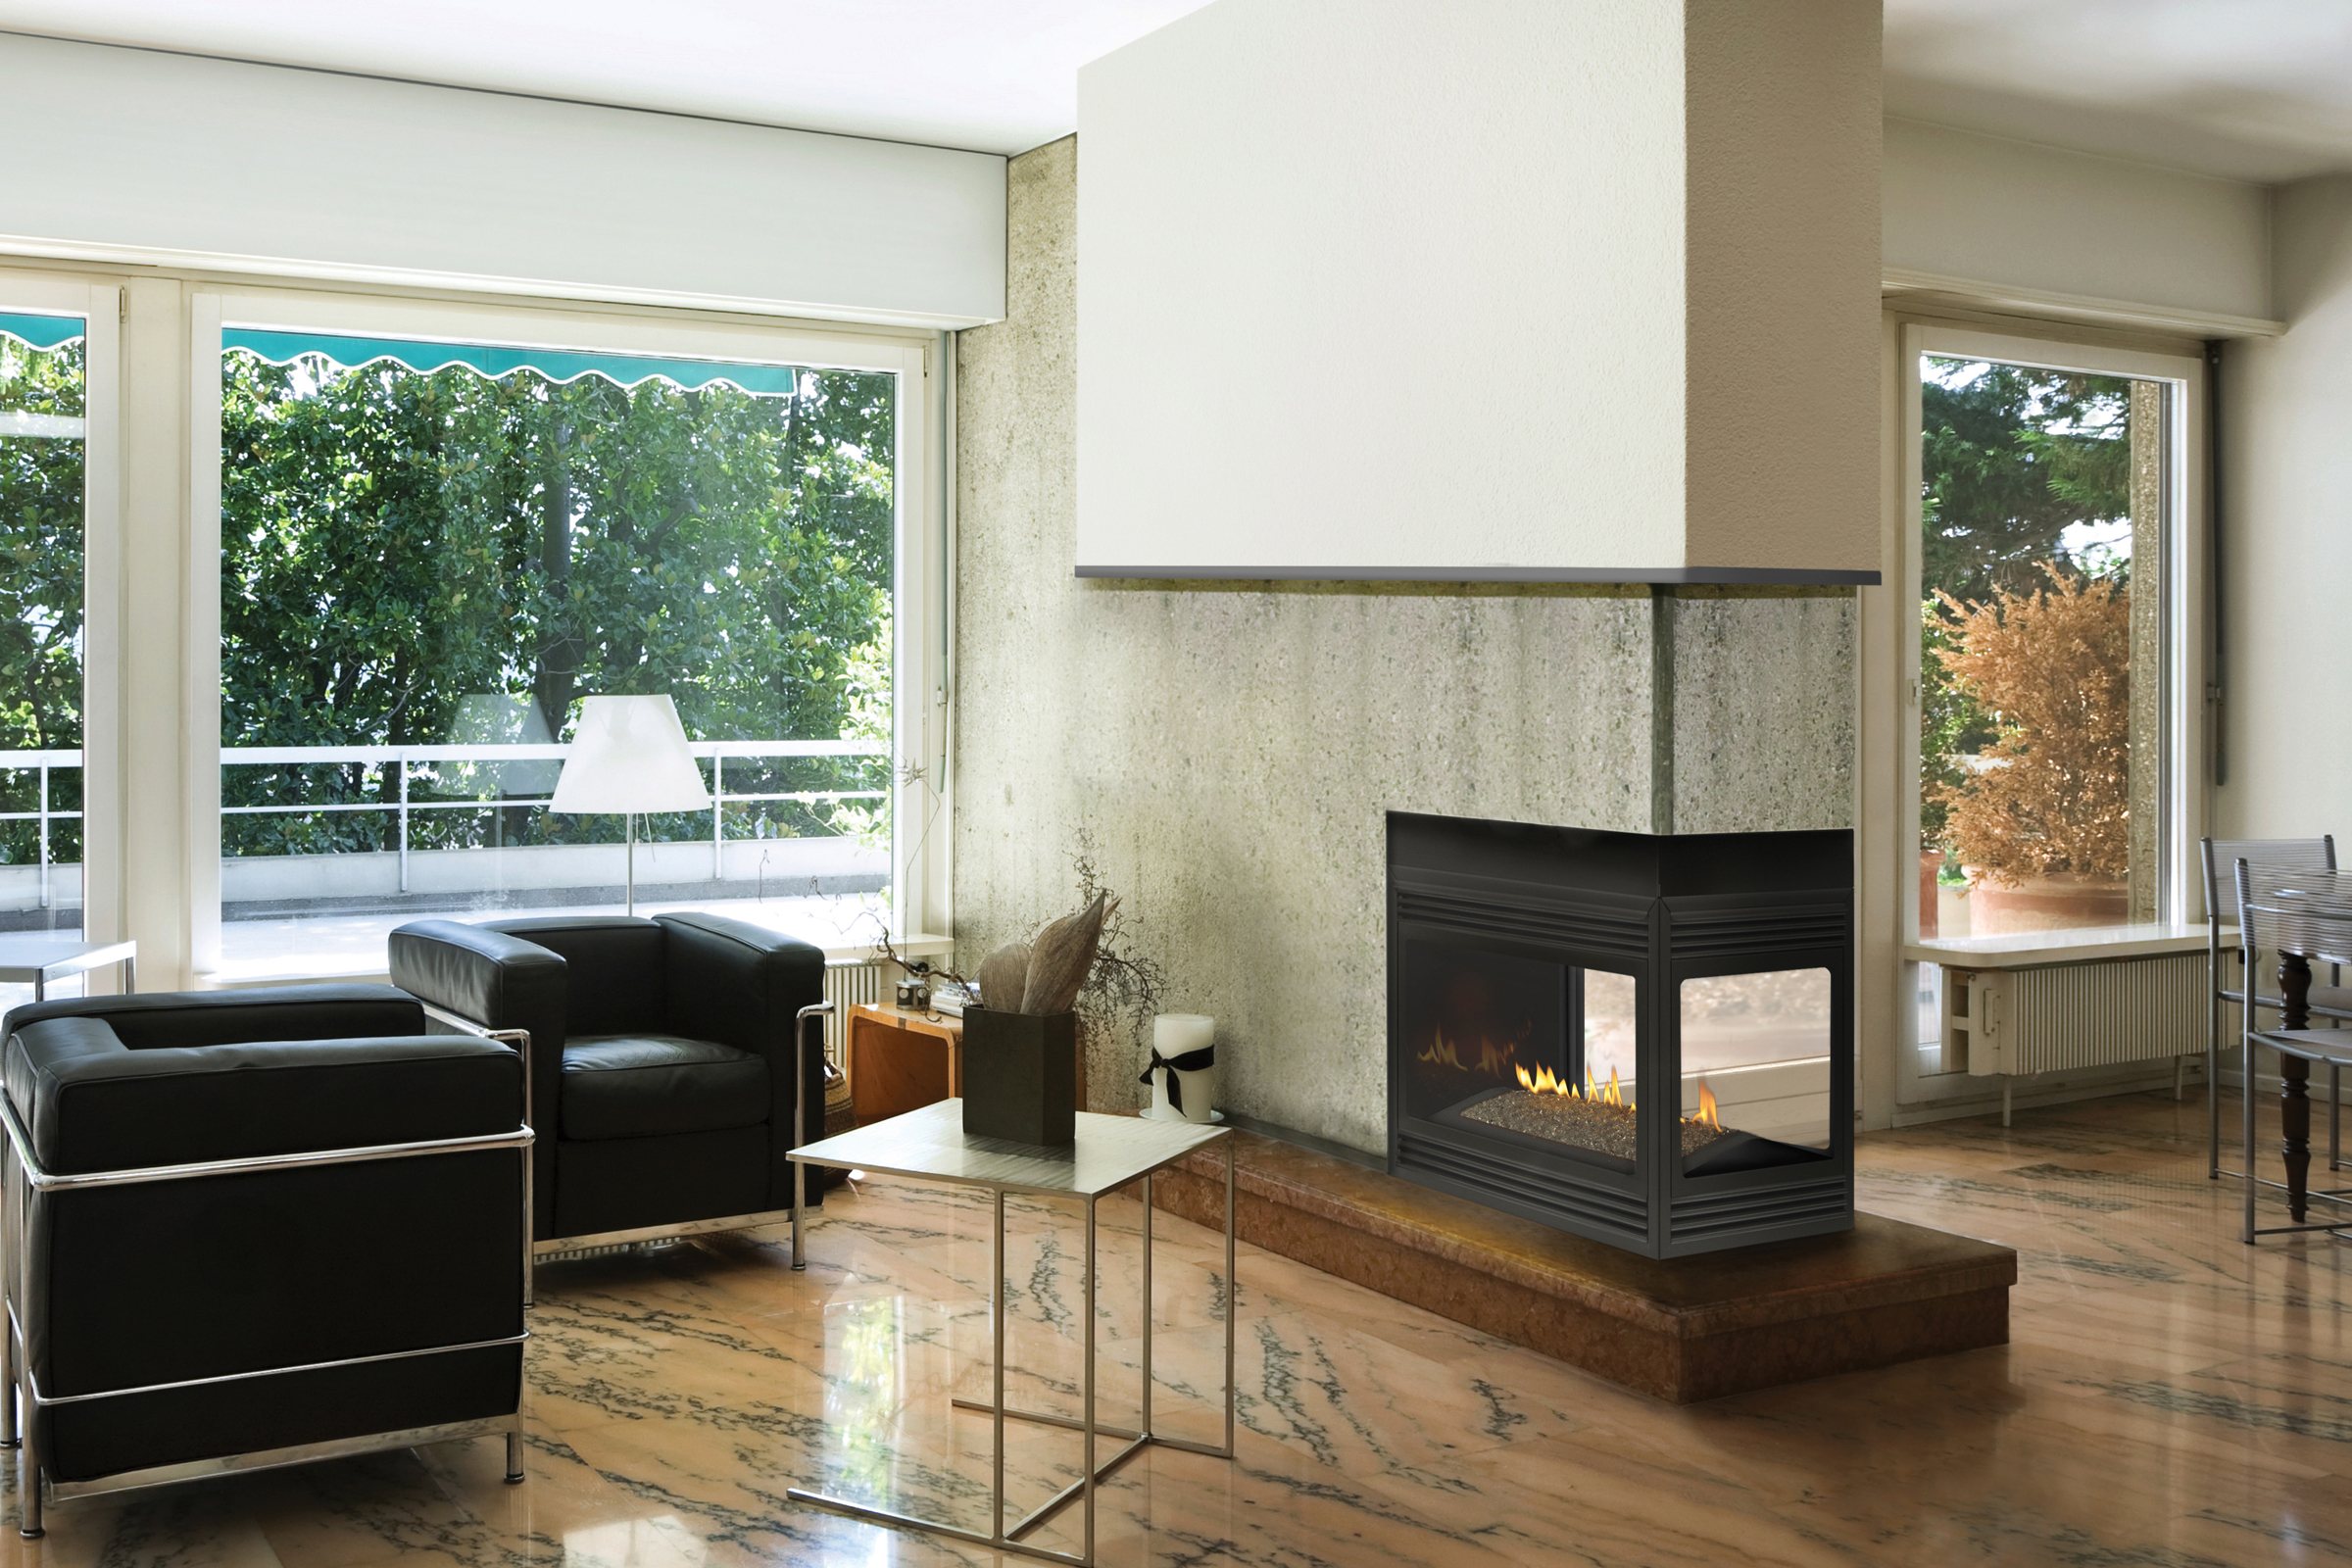 Improve House Appearance With Fireless Fireplace : Improve House Appearance With Fireless Fireplace : Napoleon Gas ...